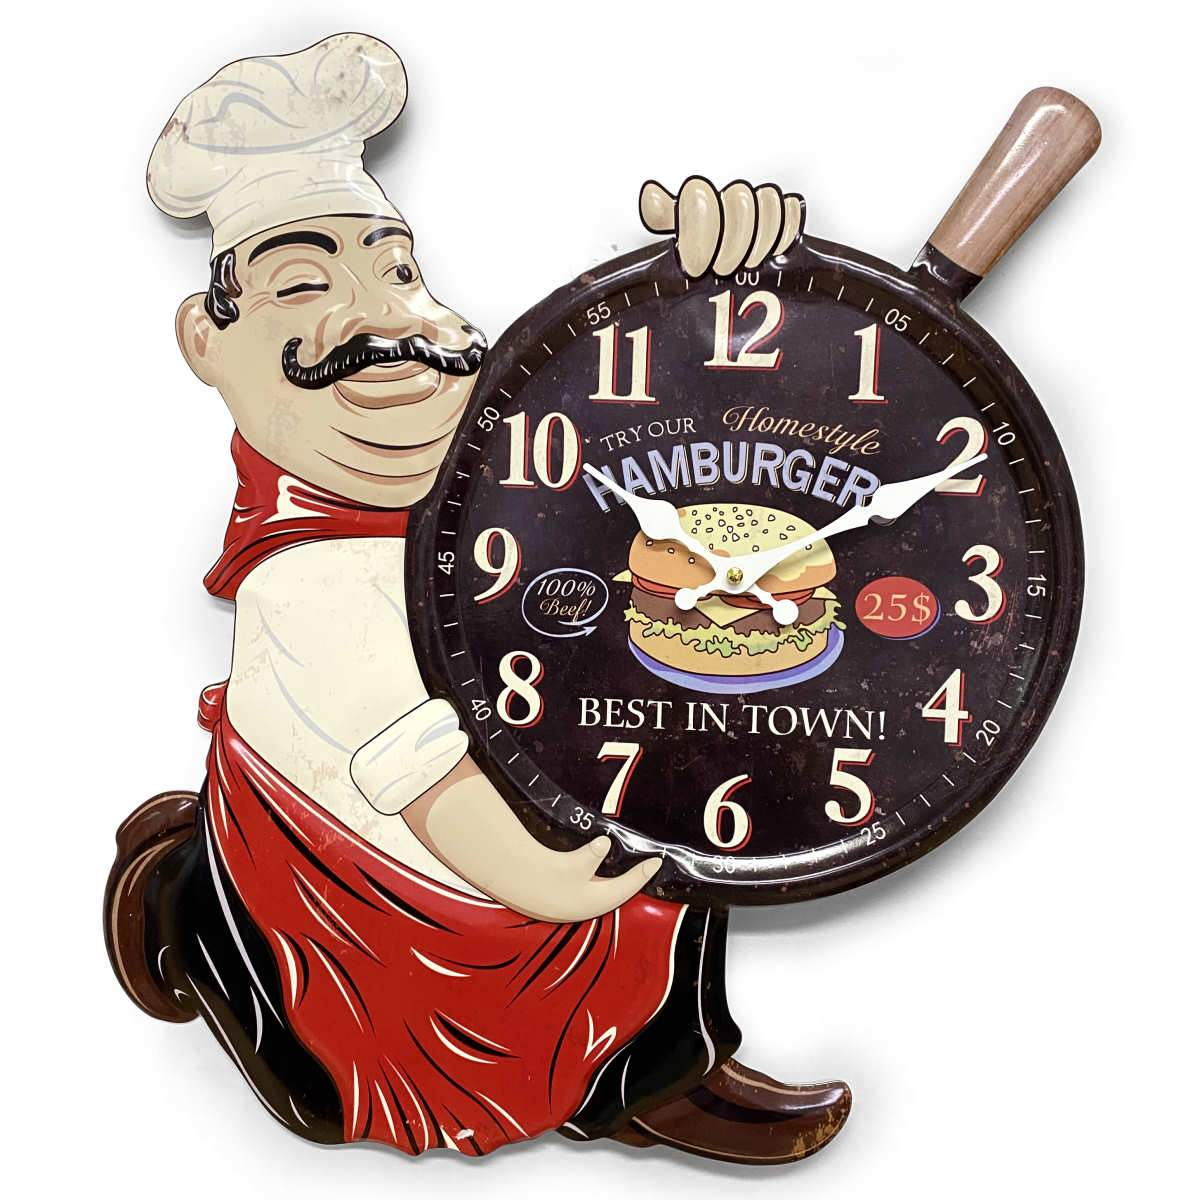 Victory Try Our Hamburgers Stamped Iron Wall Clock 54cm CHH-A1 1